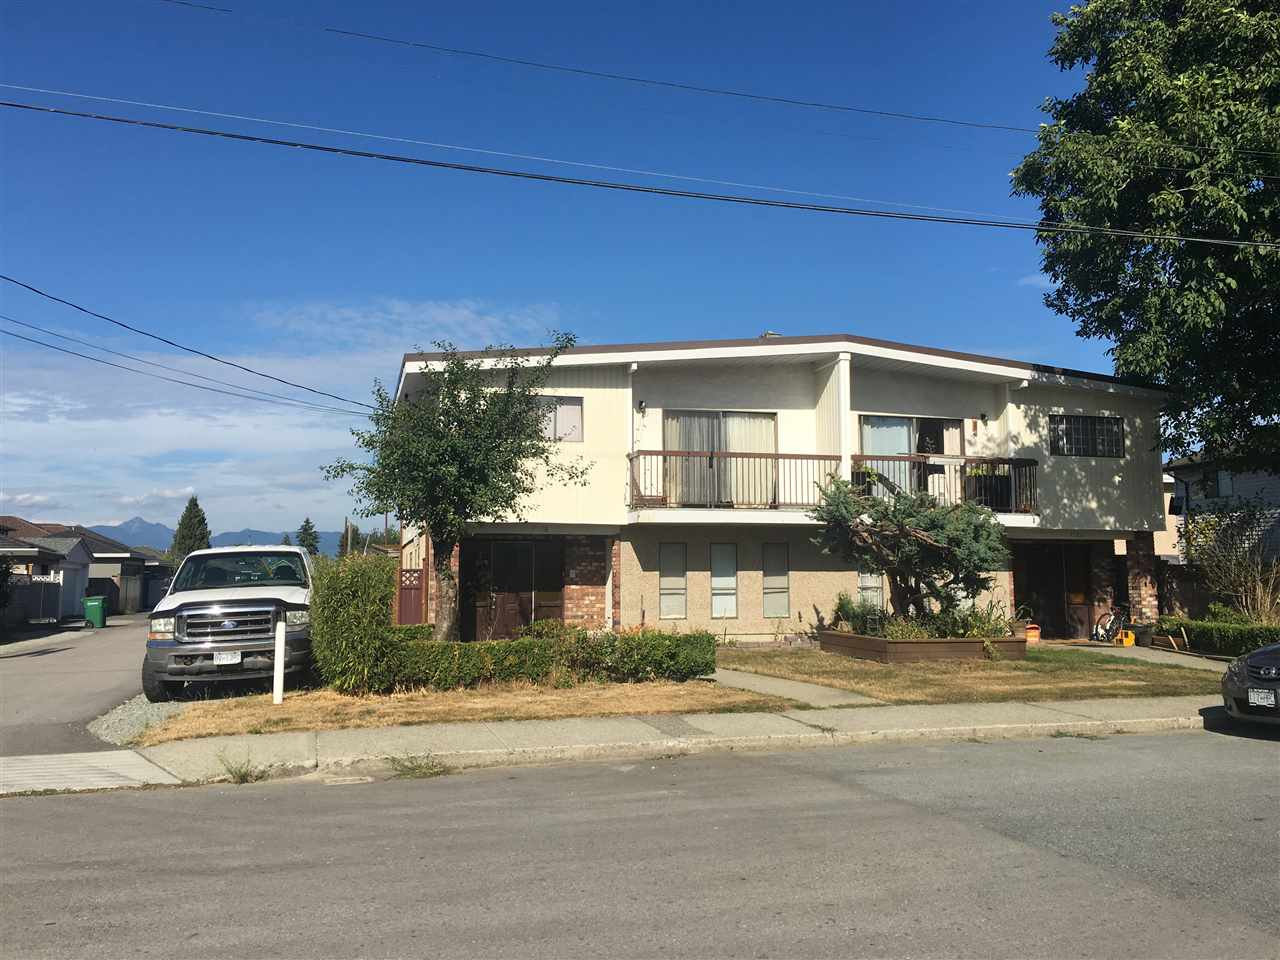 Main Photo: 7578 - 7580 4TH Street in Burnaby: East Burnaby House Duplex for sale (Burnaby East)  : MLS® # R2197532